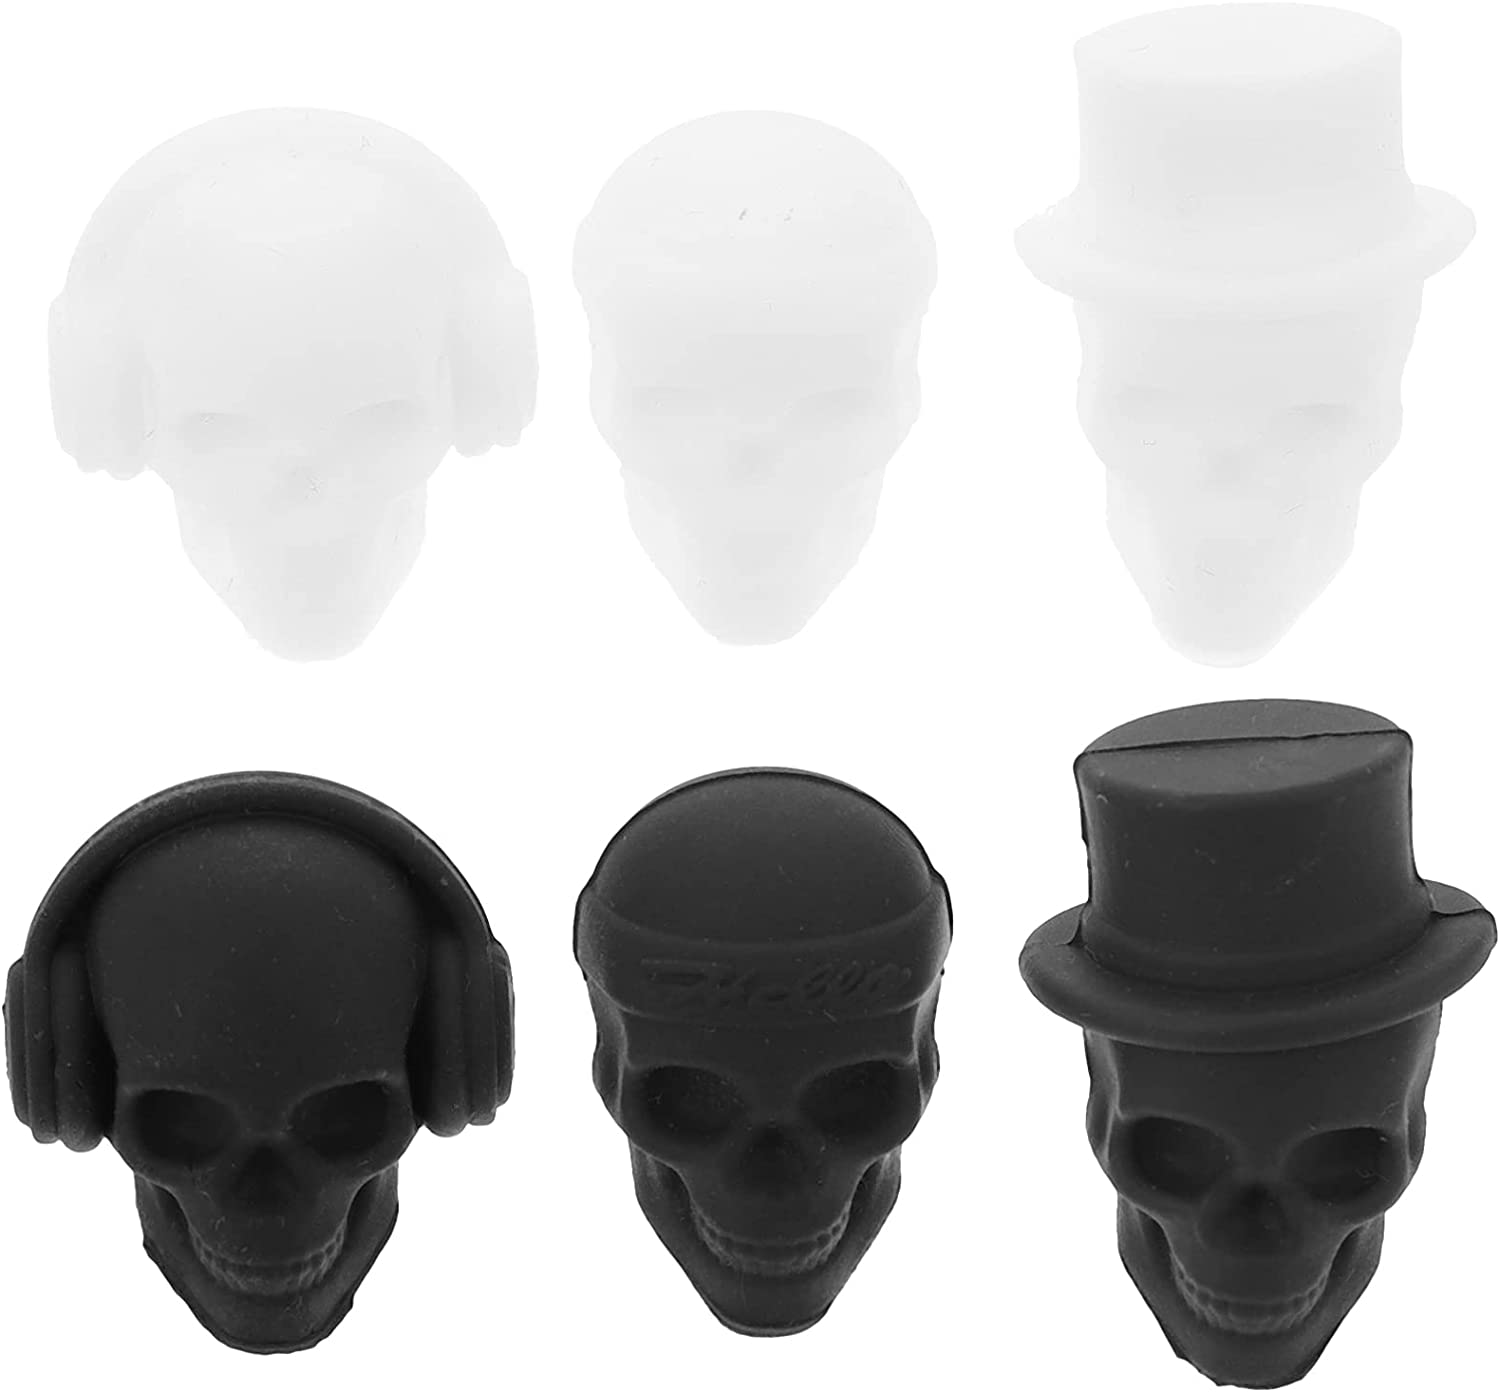 Hemoton 6pcs High quality new Silicone Wine Markers Tags Skull Glass Popular popular Charms